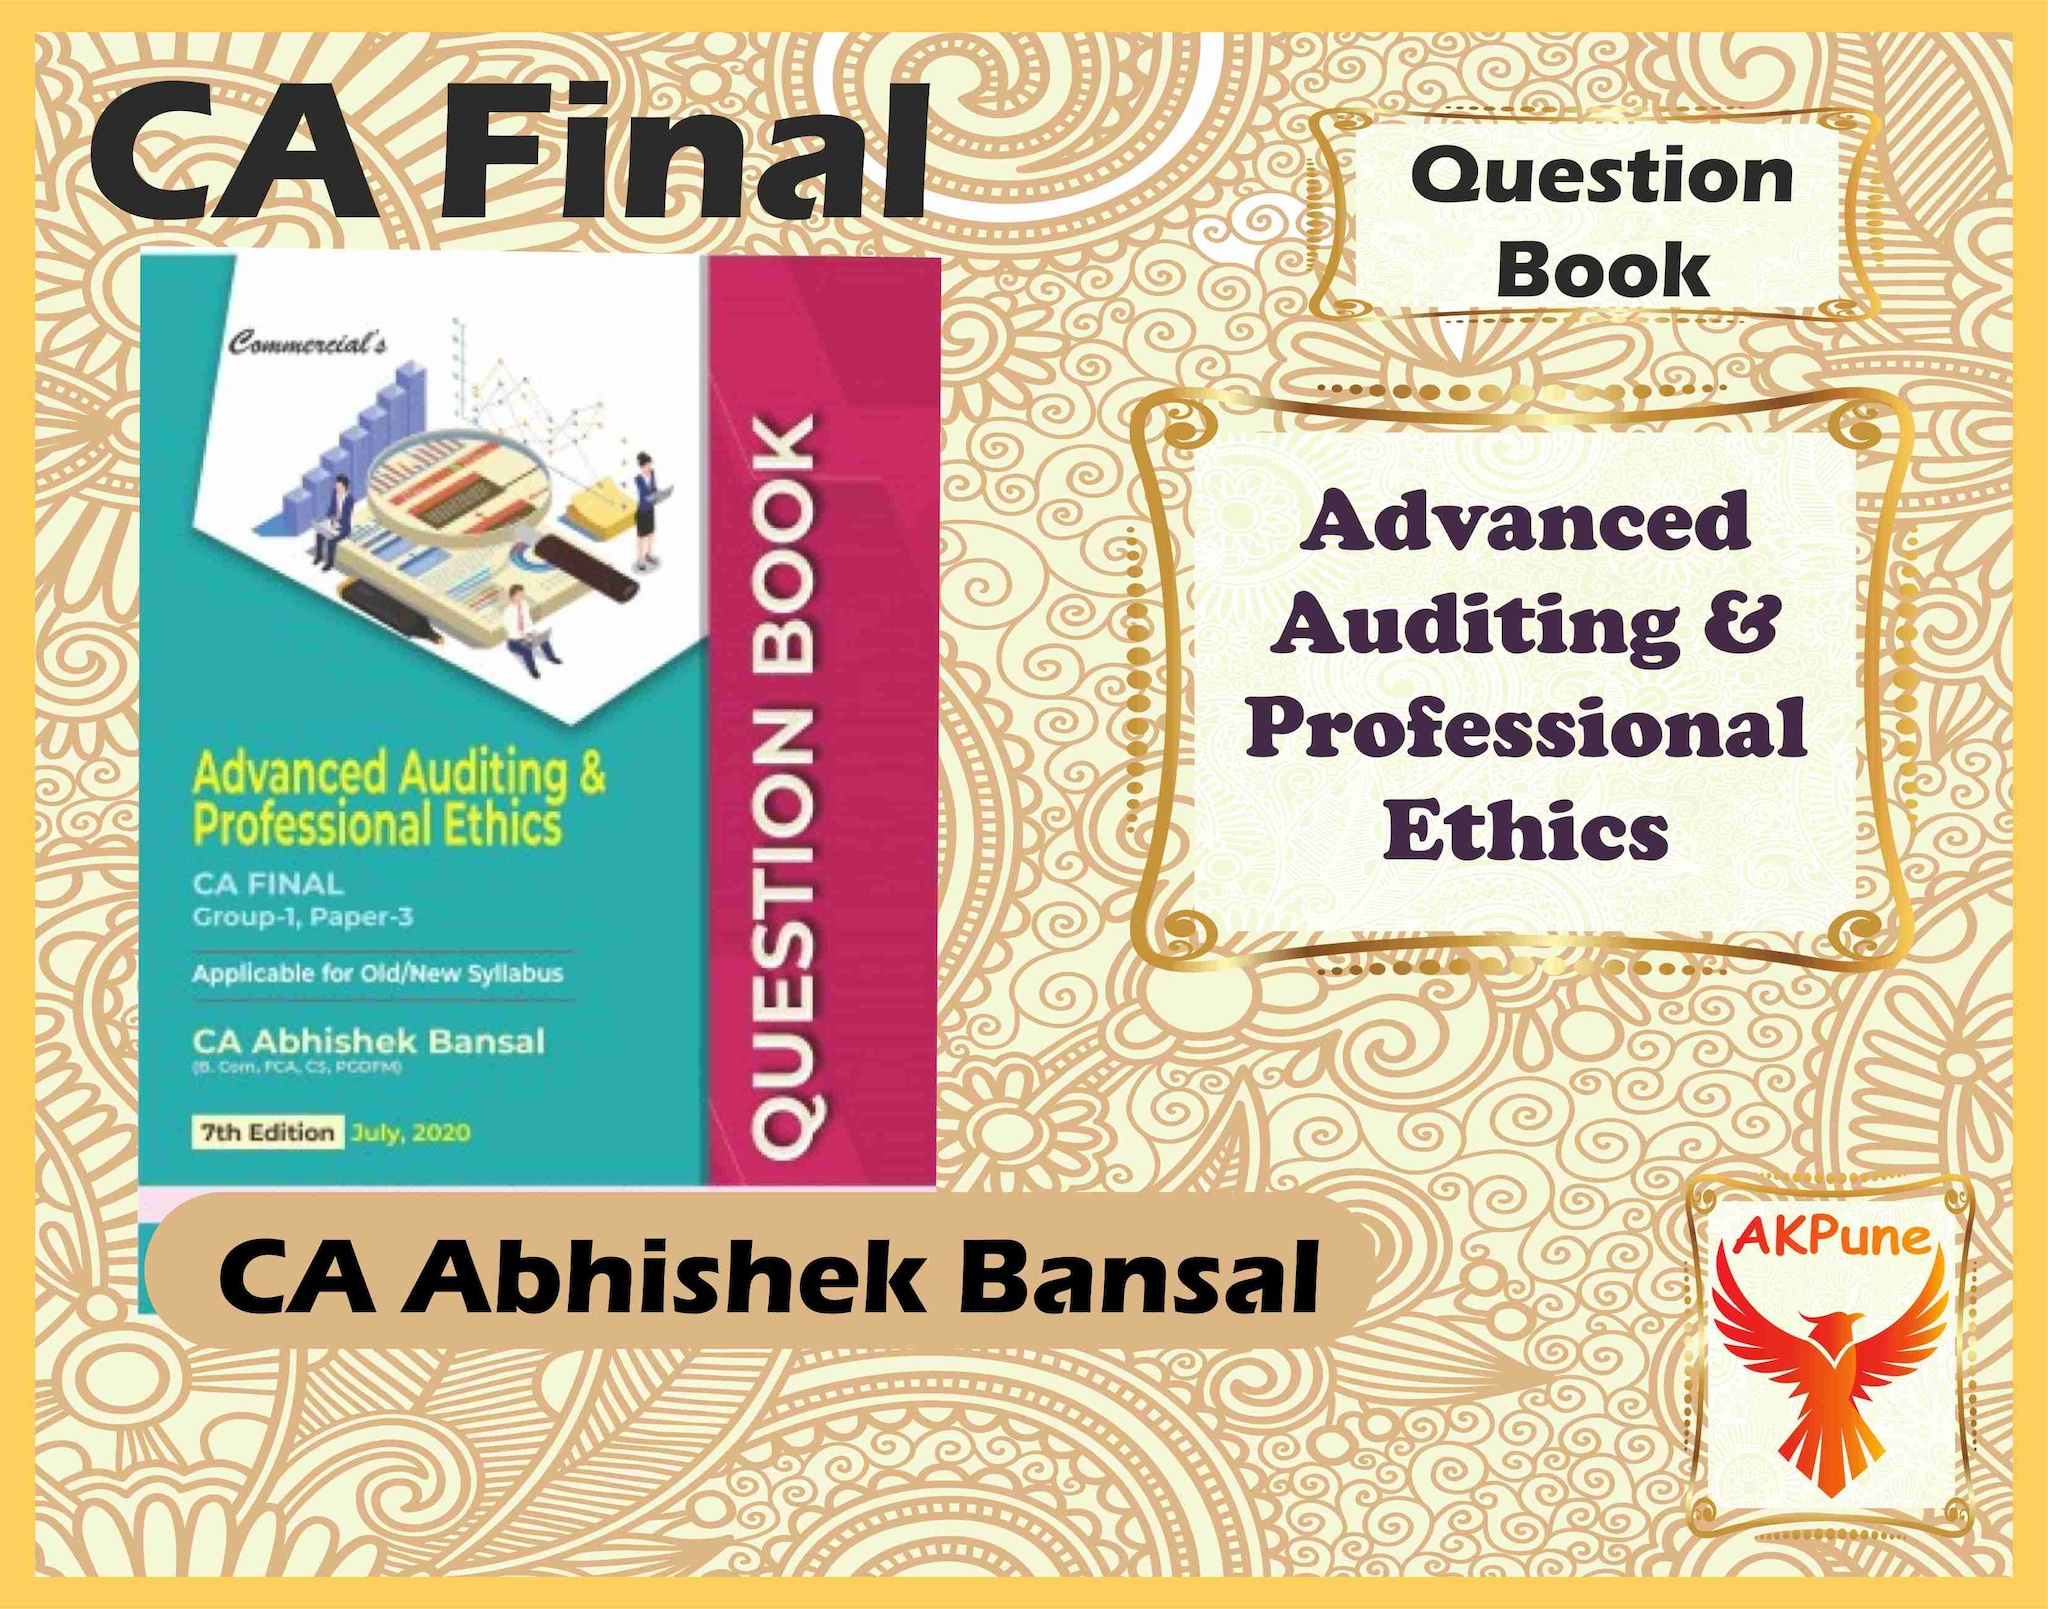 Commercial's CA Final Advanced Auditing & Professional Ethics (QUESTION BOOK) By CA Abhishek Bansal For November 2020 Exam